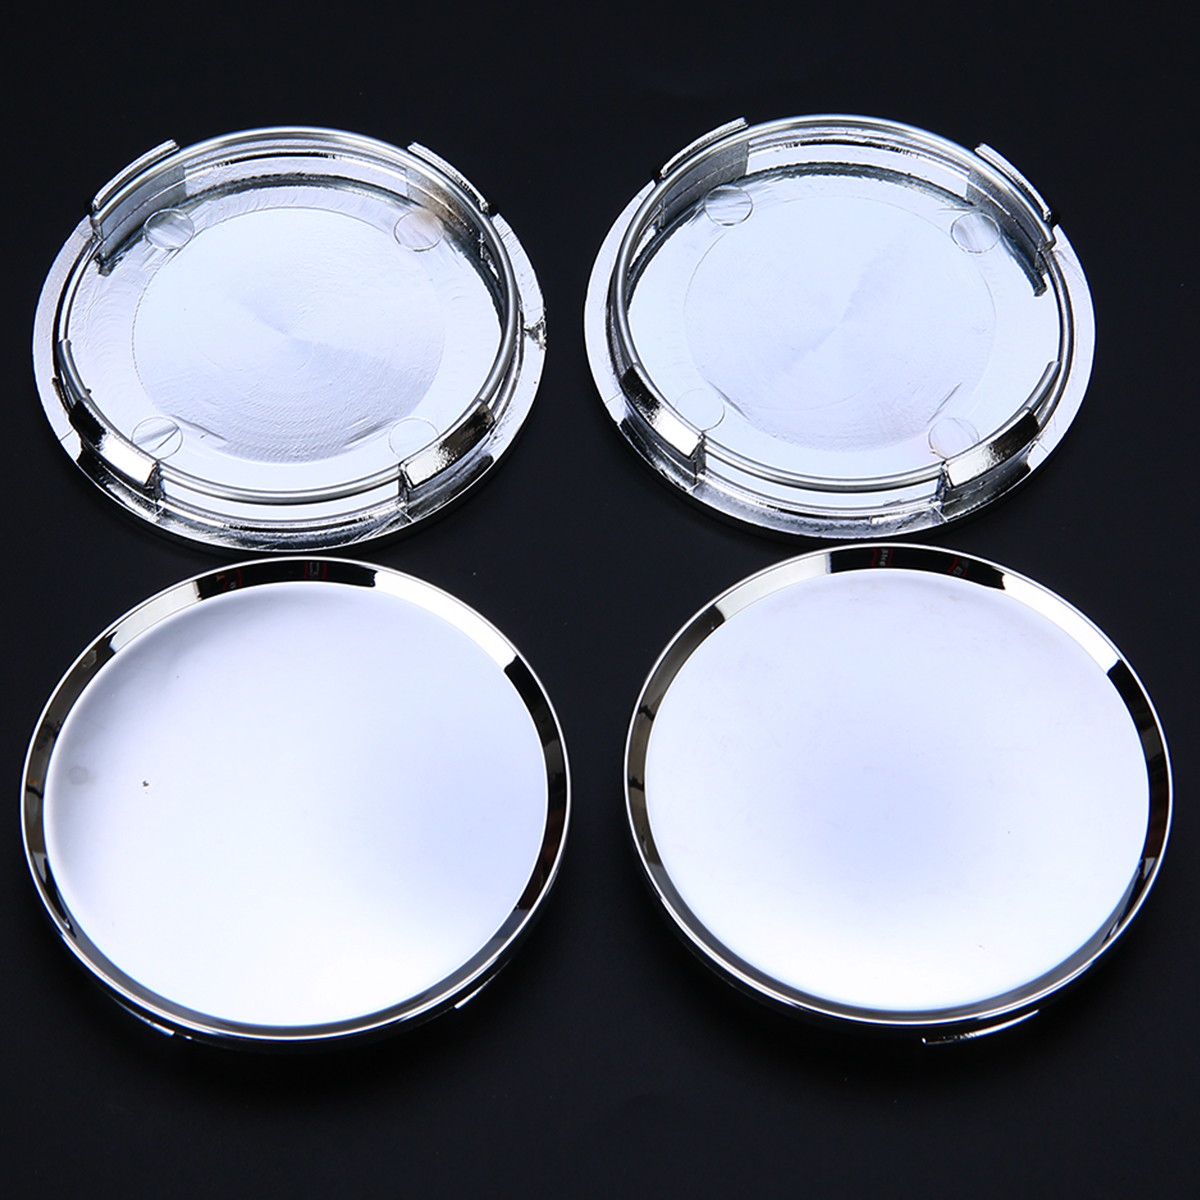 Image 3 - 4pcs/set Easy Installation 63mm Car Vehicle Wheel Center Hub Cap Cover Silver For Most Car Trucks Vehicles-in Wheel Center Caps from Automobiles & Motorcycles